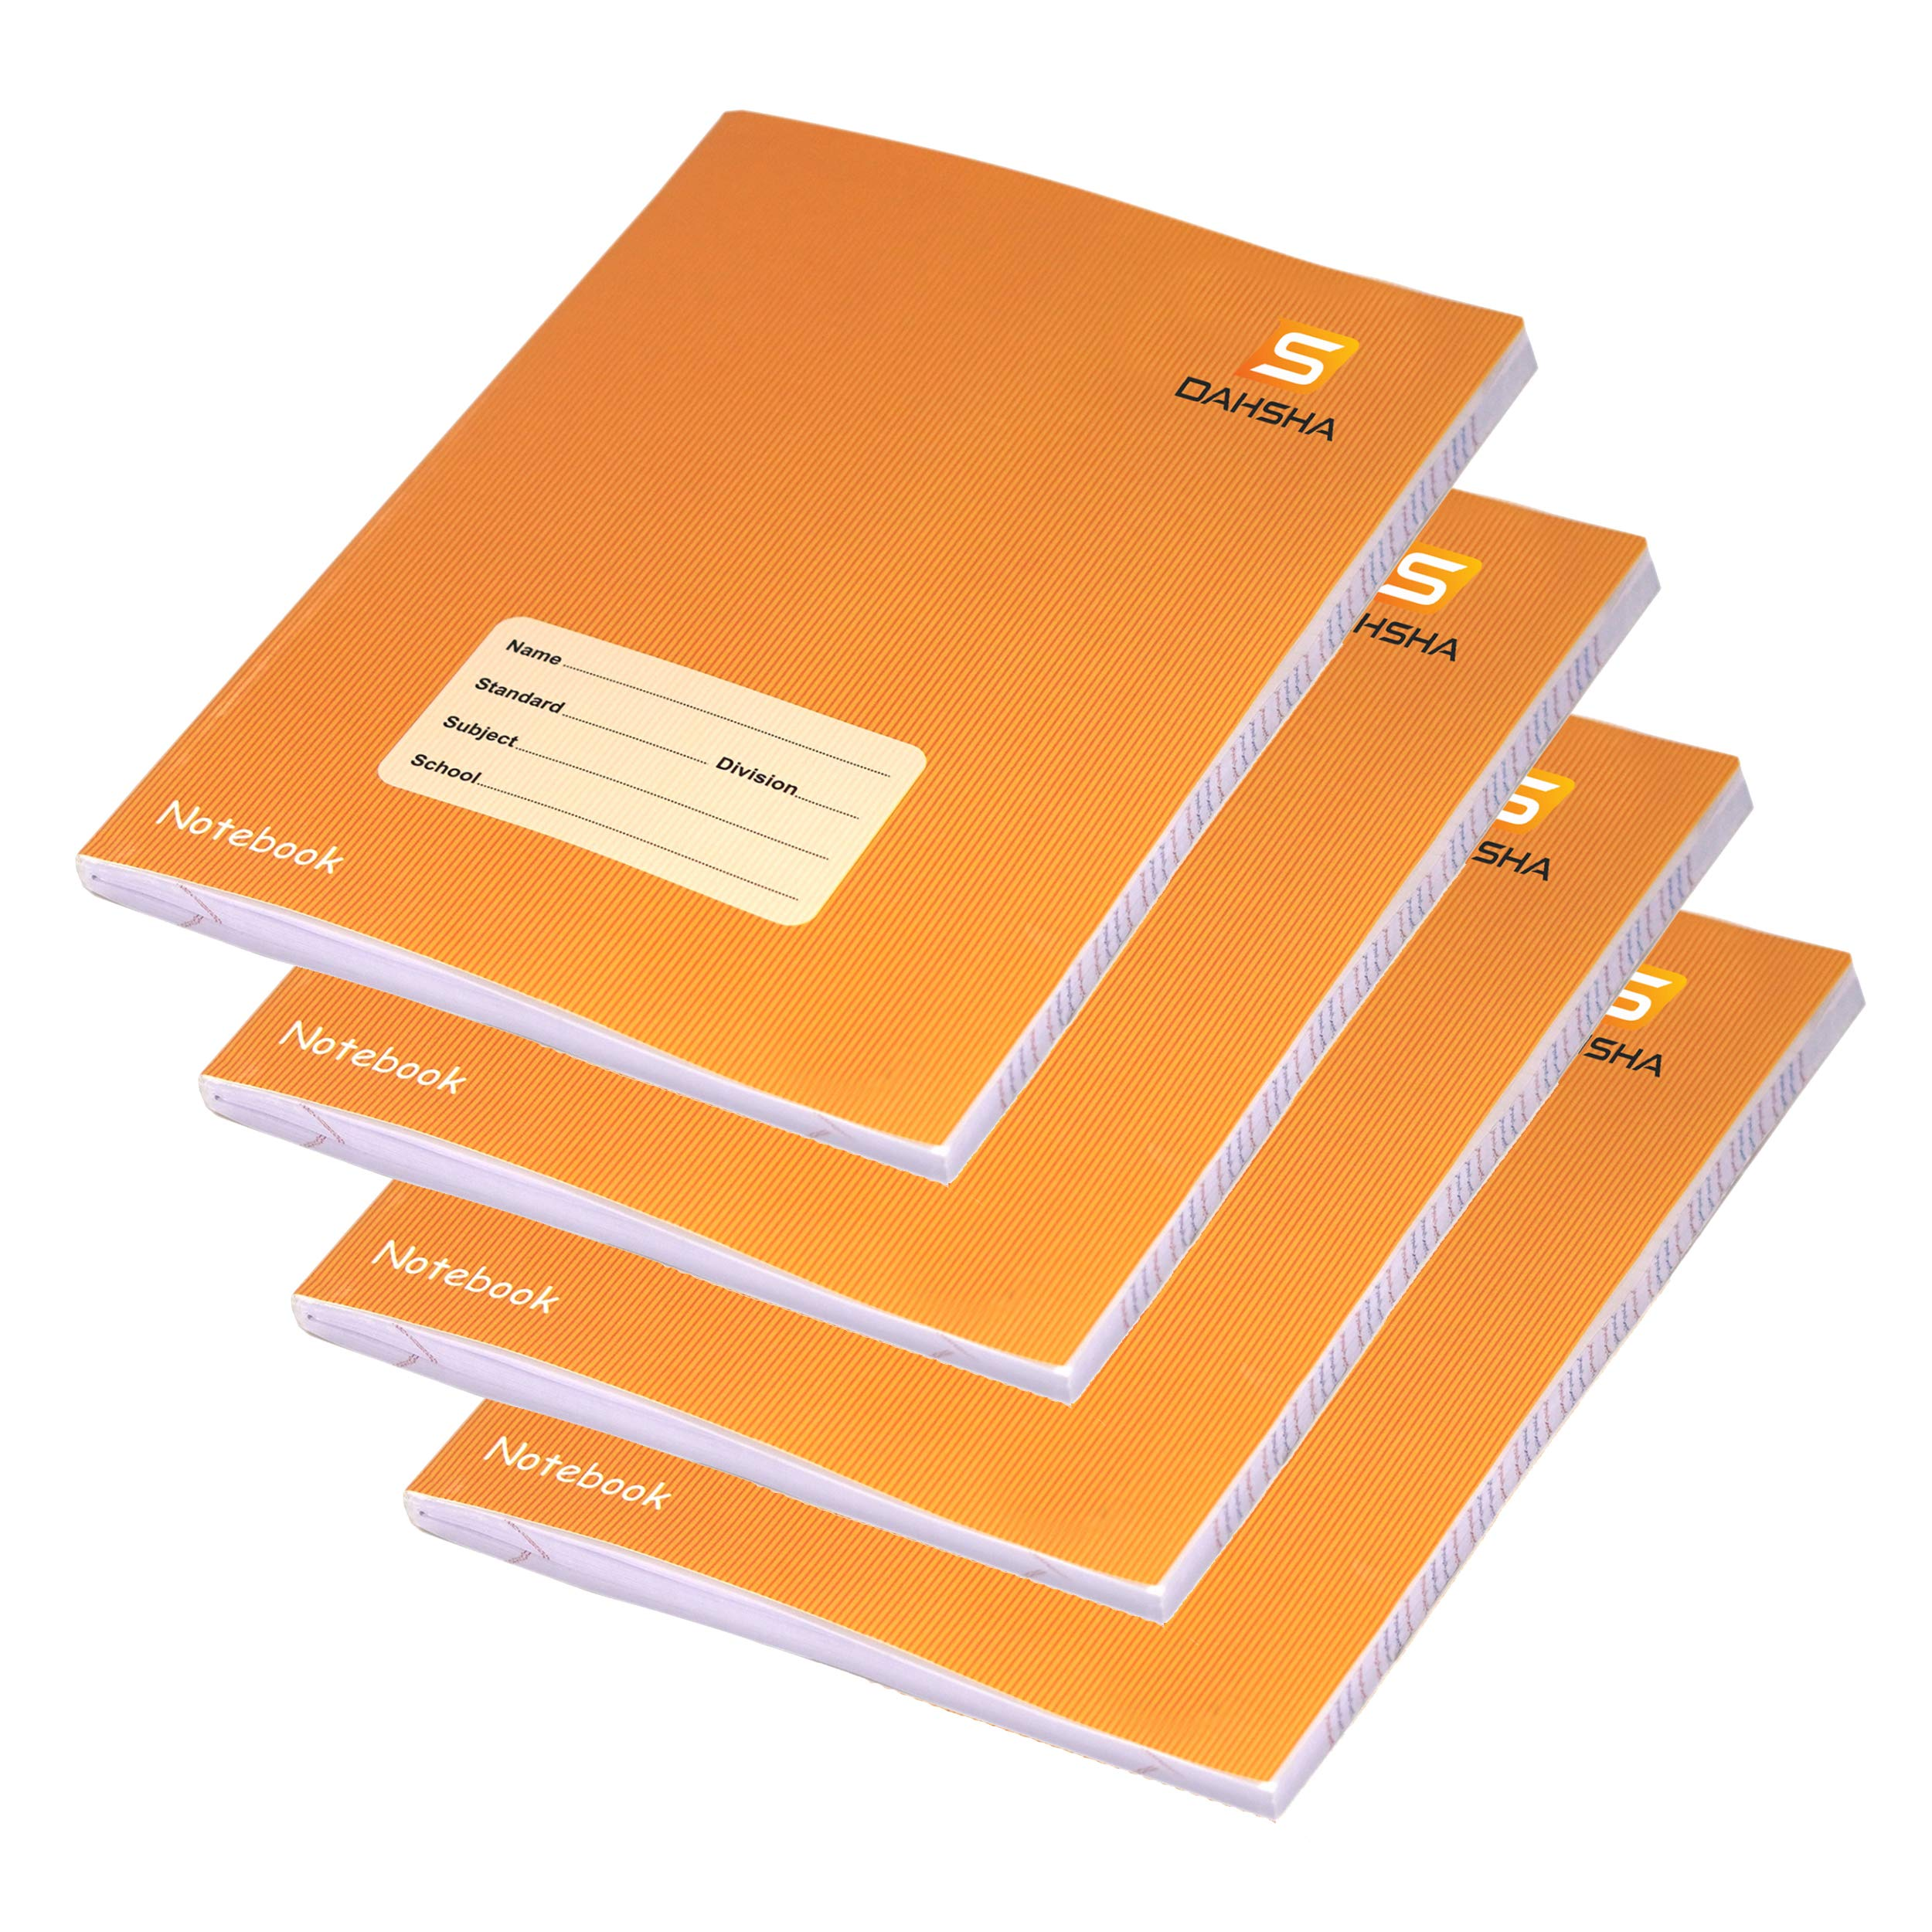 DAHSHA Pack of 4, Four Line Notebooks for English Writing | Ruled 172 Pages  in Each Book | Notebook for Kids| Notebook for Student (18 cm X 24 cm) –  Brown- Buy Online in Jordan at Desertcart - 210432706.